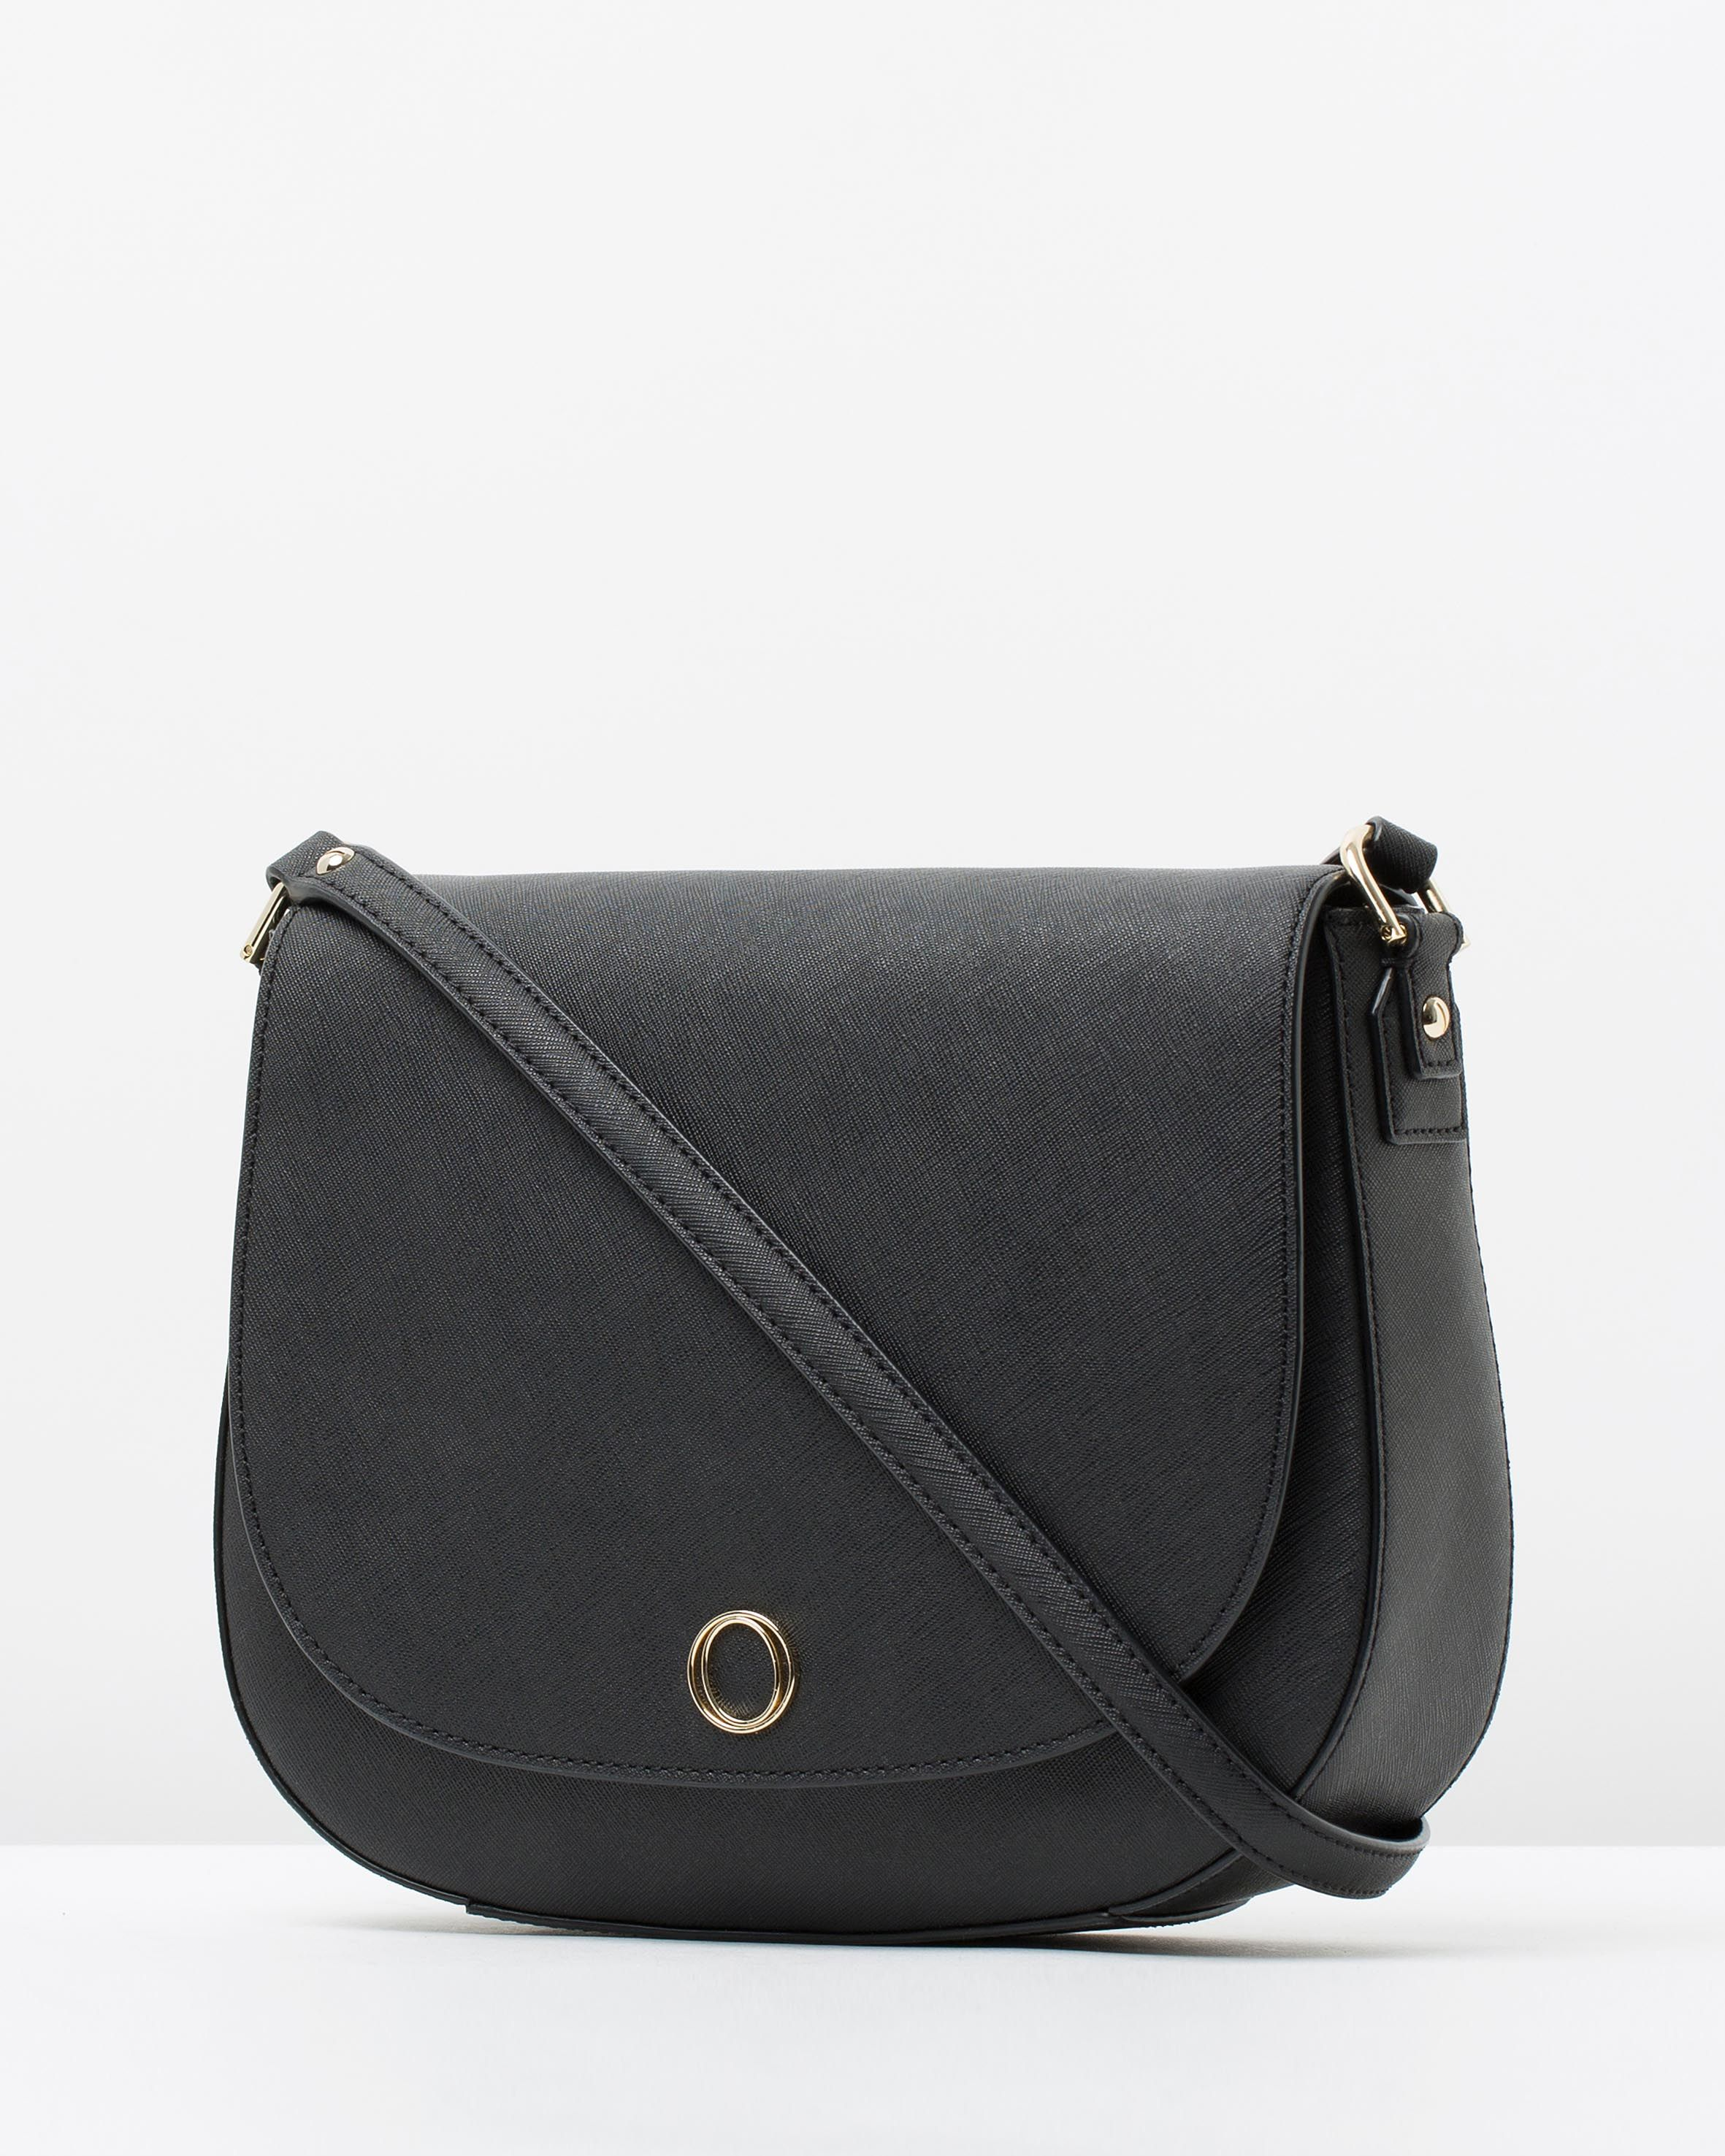 Oroton Bag From The Iconic